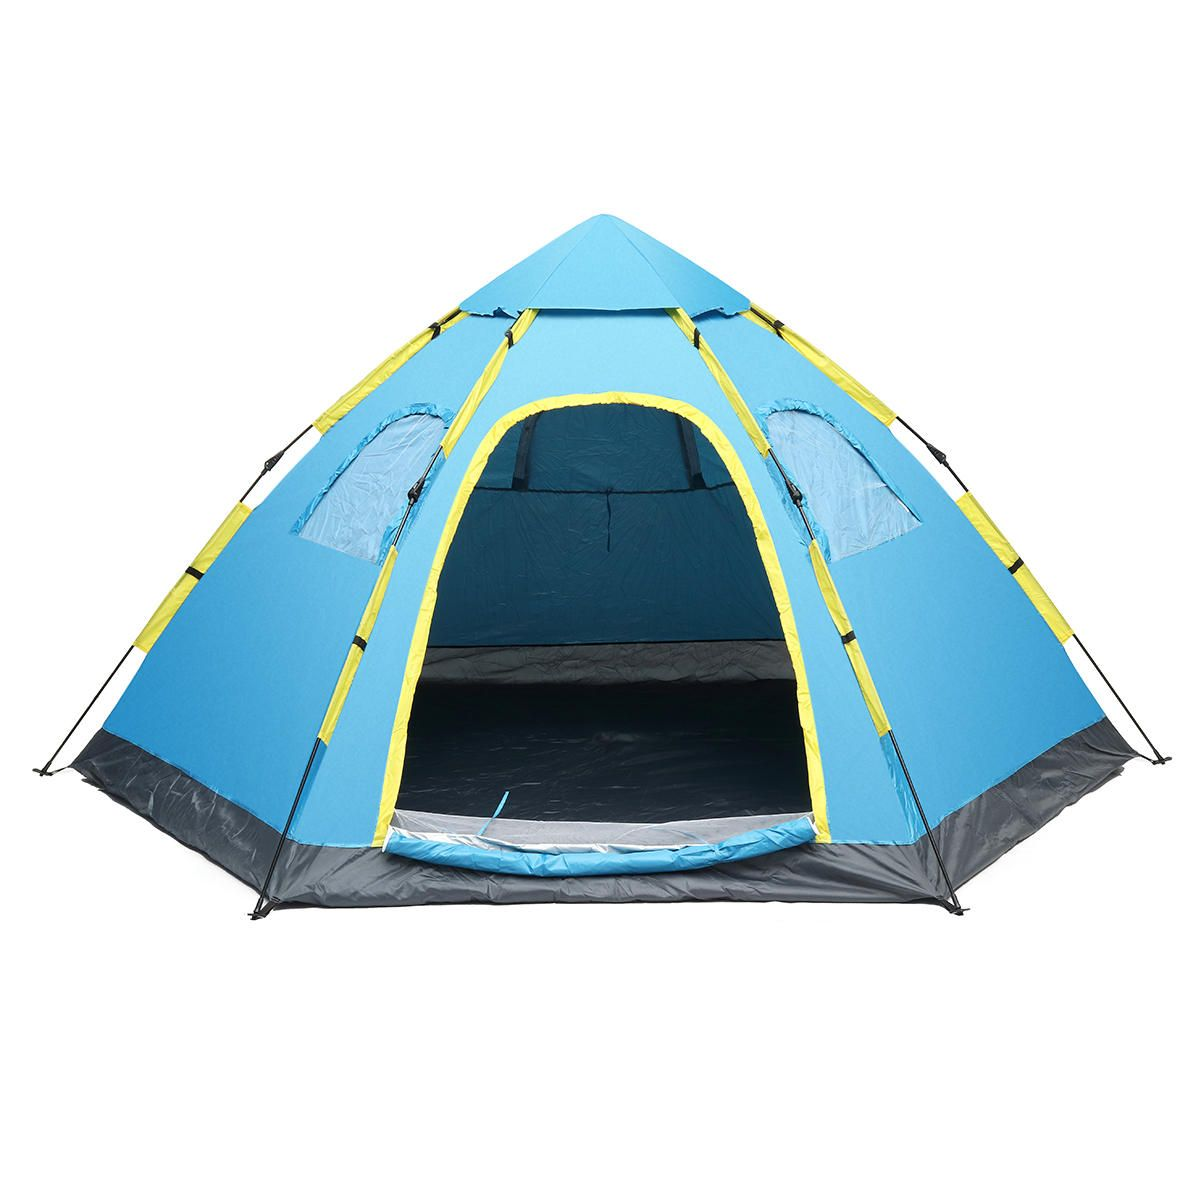 Outdoor Camping 5 8 People Automatic Pop Up Tent Waterproof